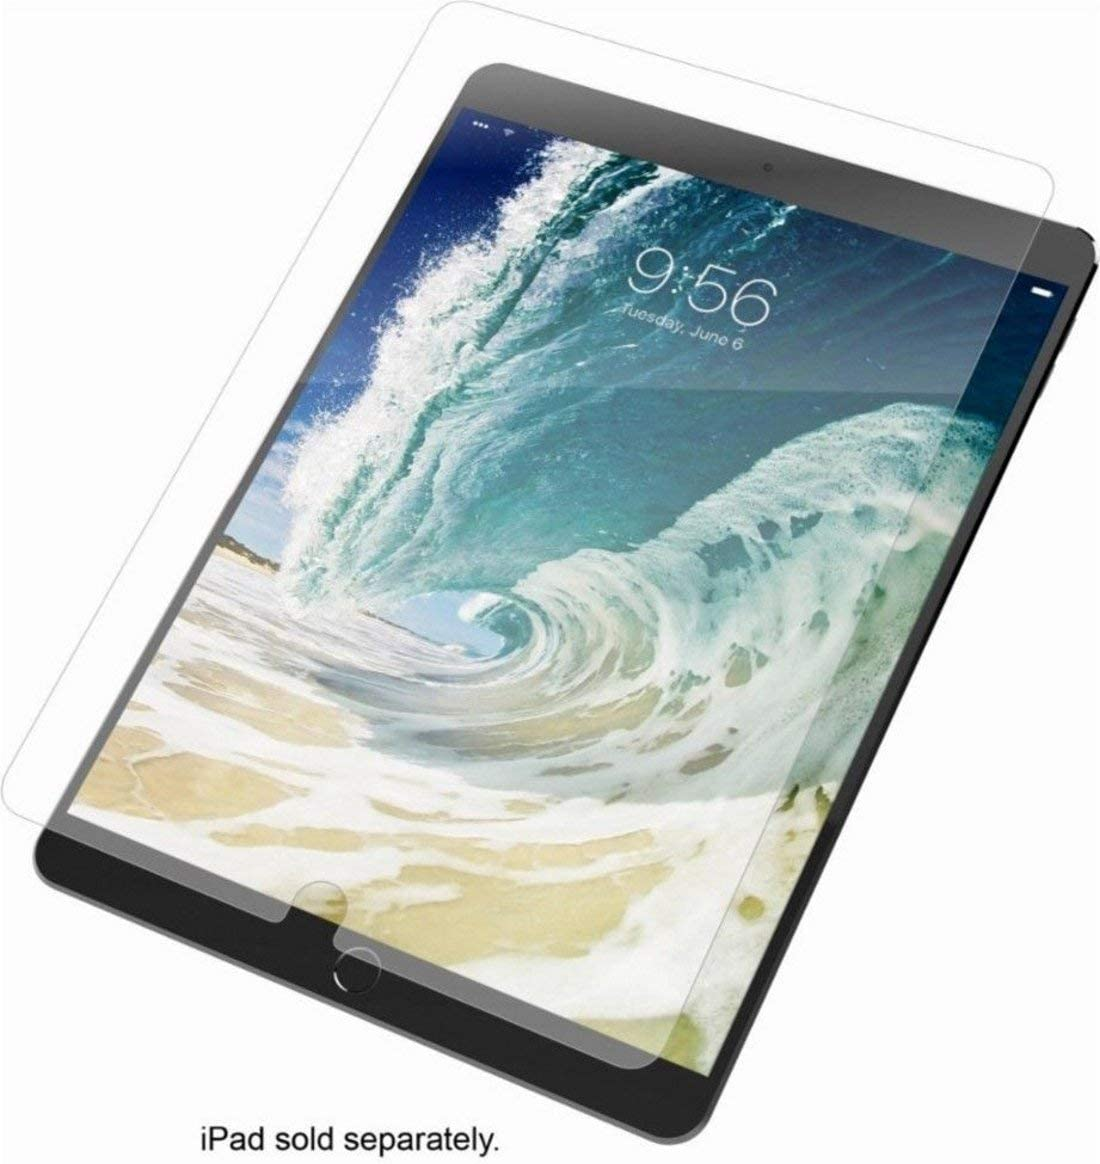 ZAGG InvisibleShield HD Glass+ Import Product Screen for Protector Anti Scratch